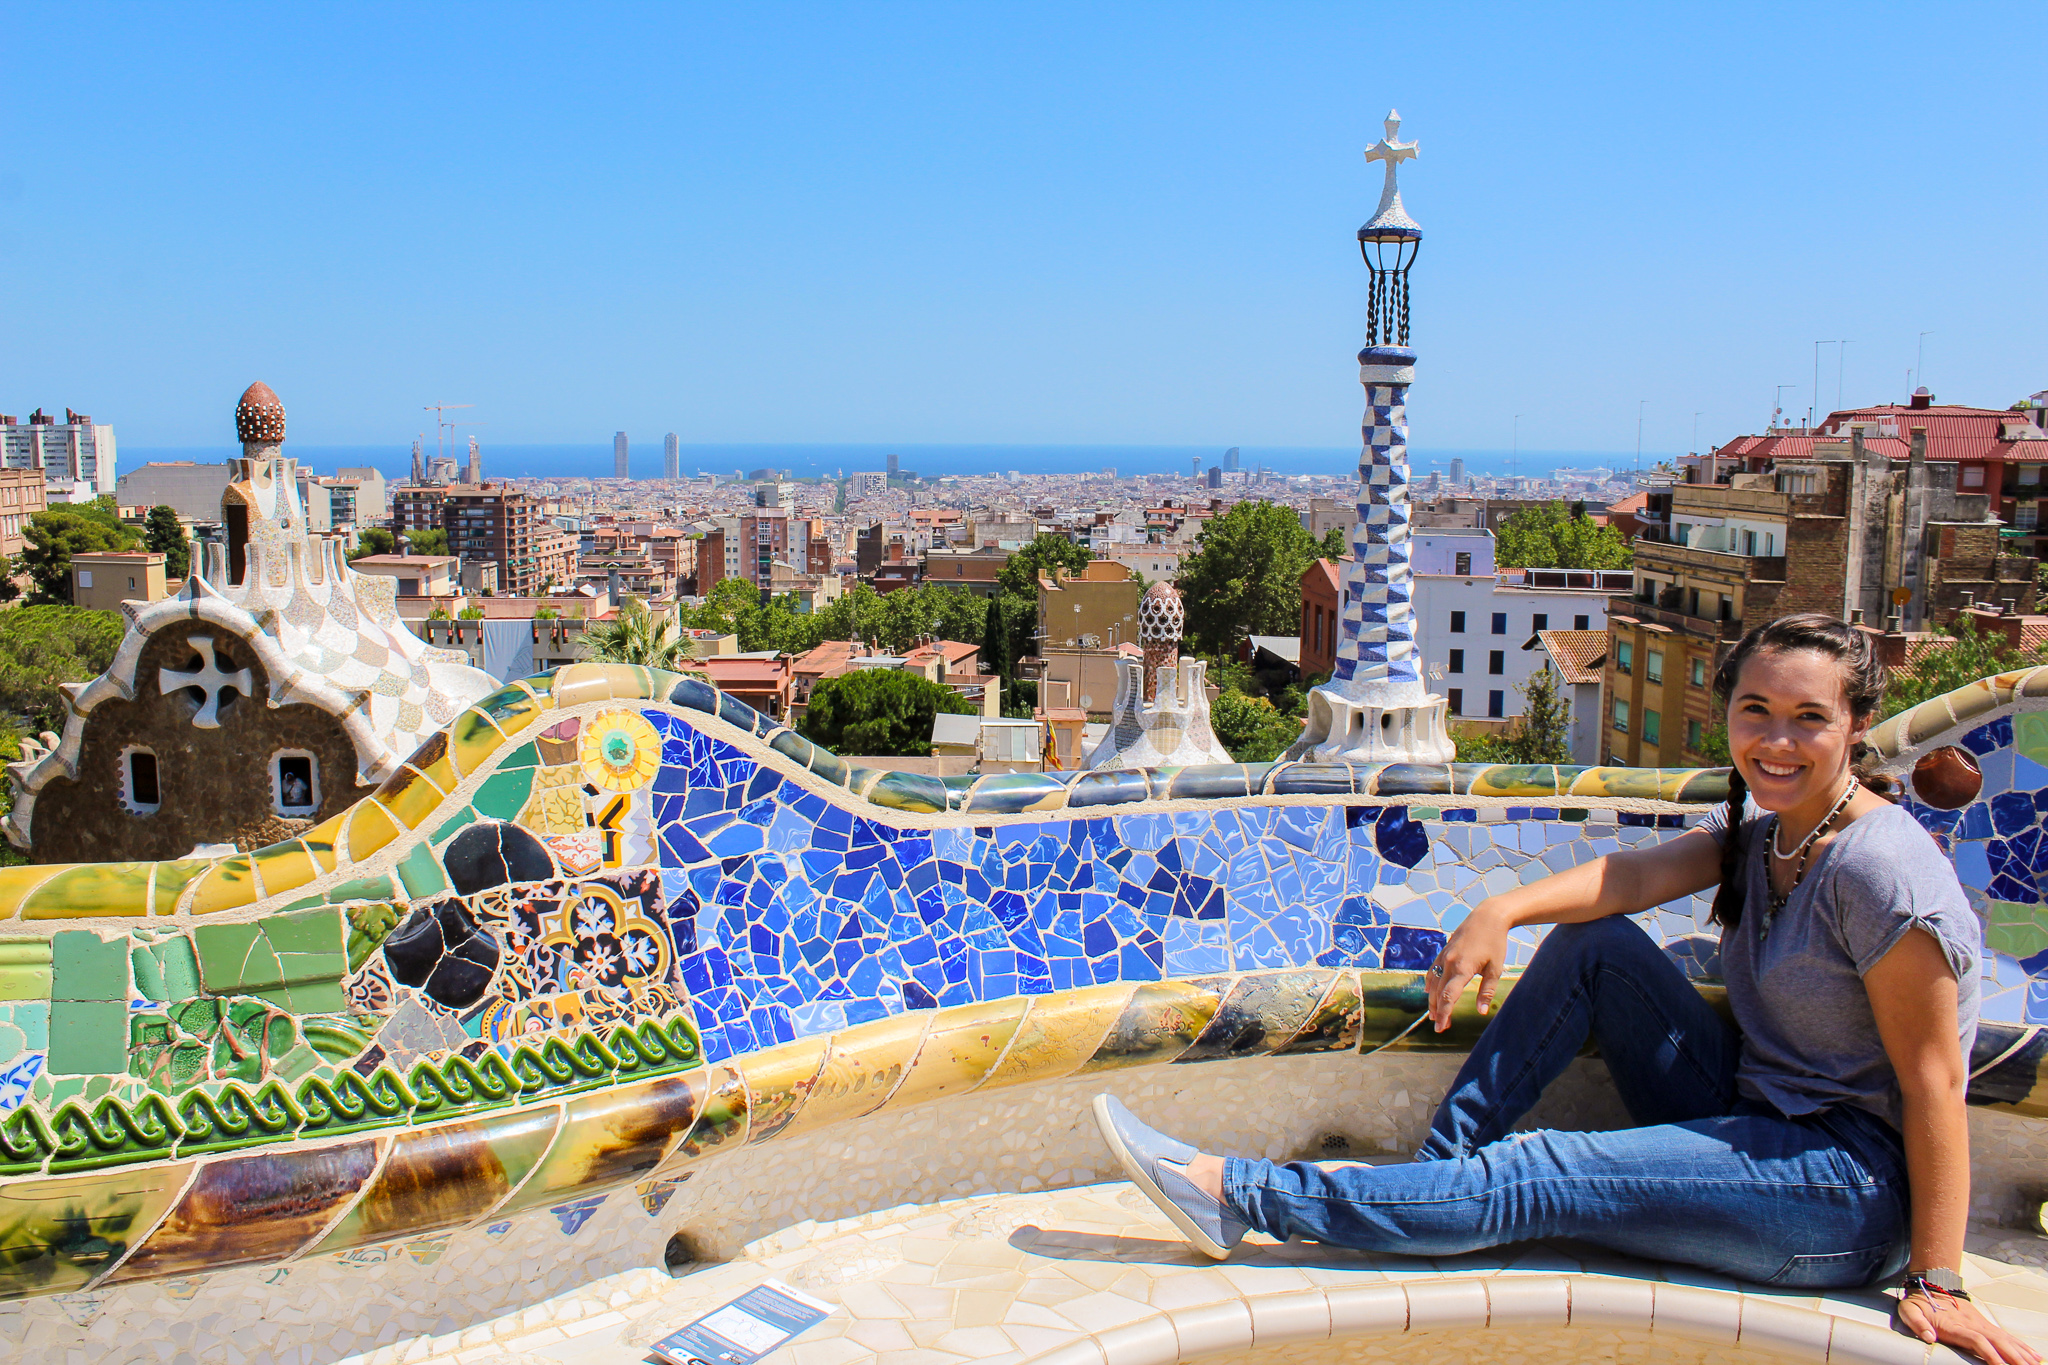 Summer Program - Travel And Tourism | Travel For Teens: Europe for Older Teens - London, Paris, French Riviera and Barcelona